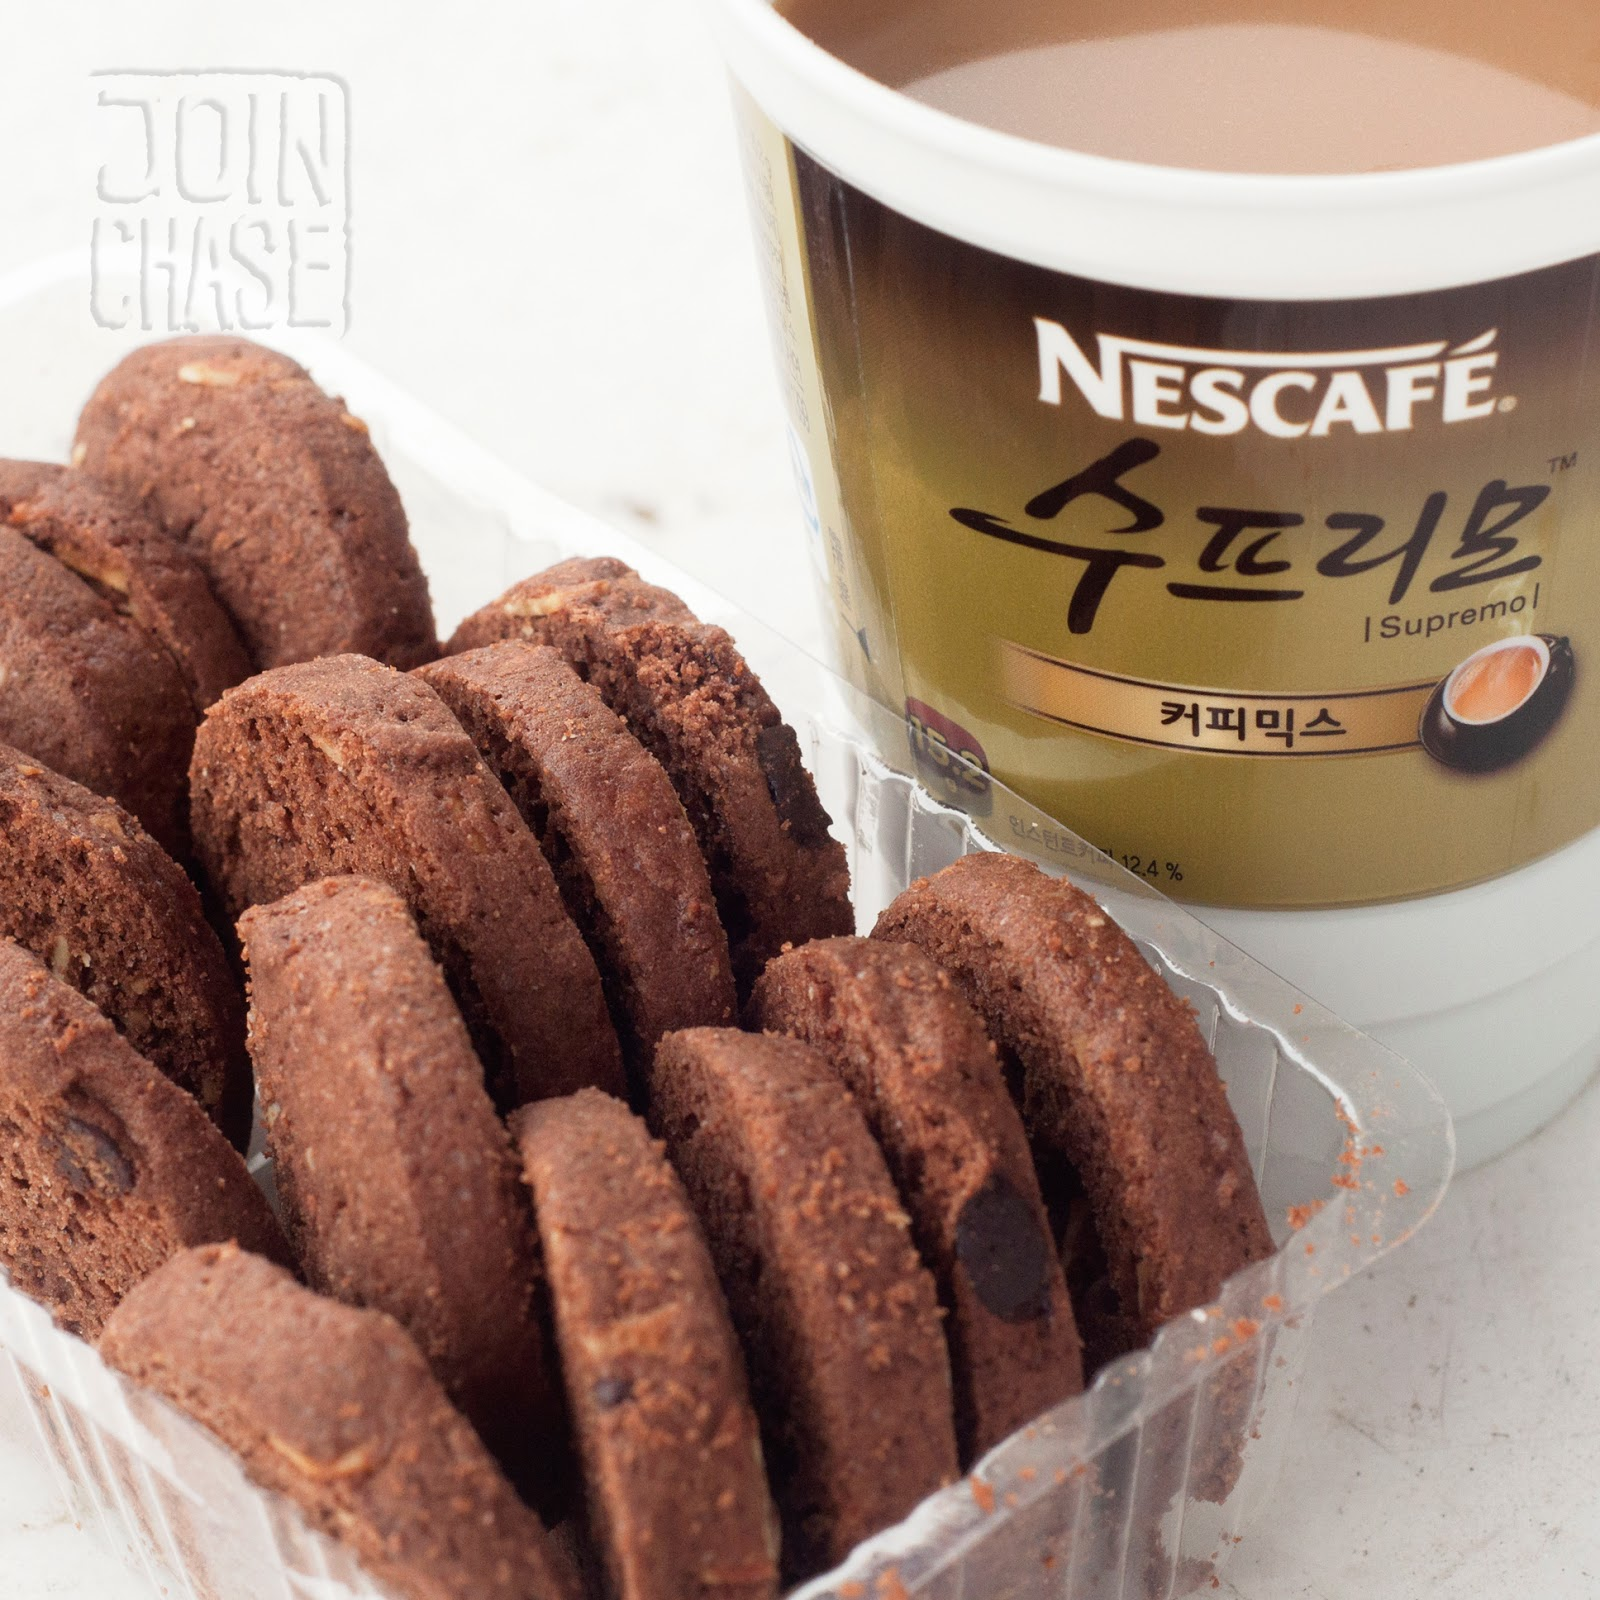 Instant coffee and cookies from a convenience store in South Korea.